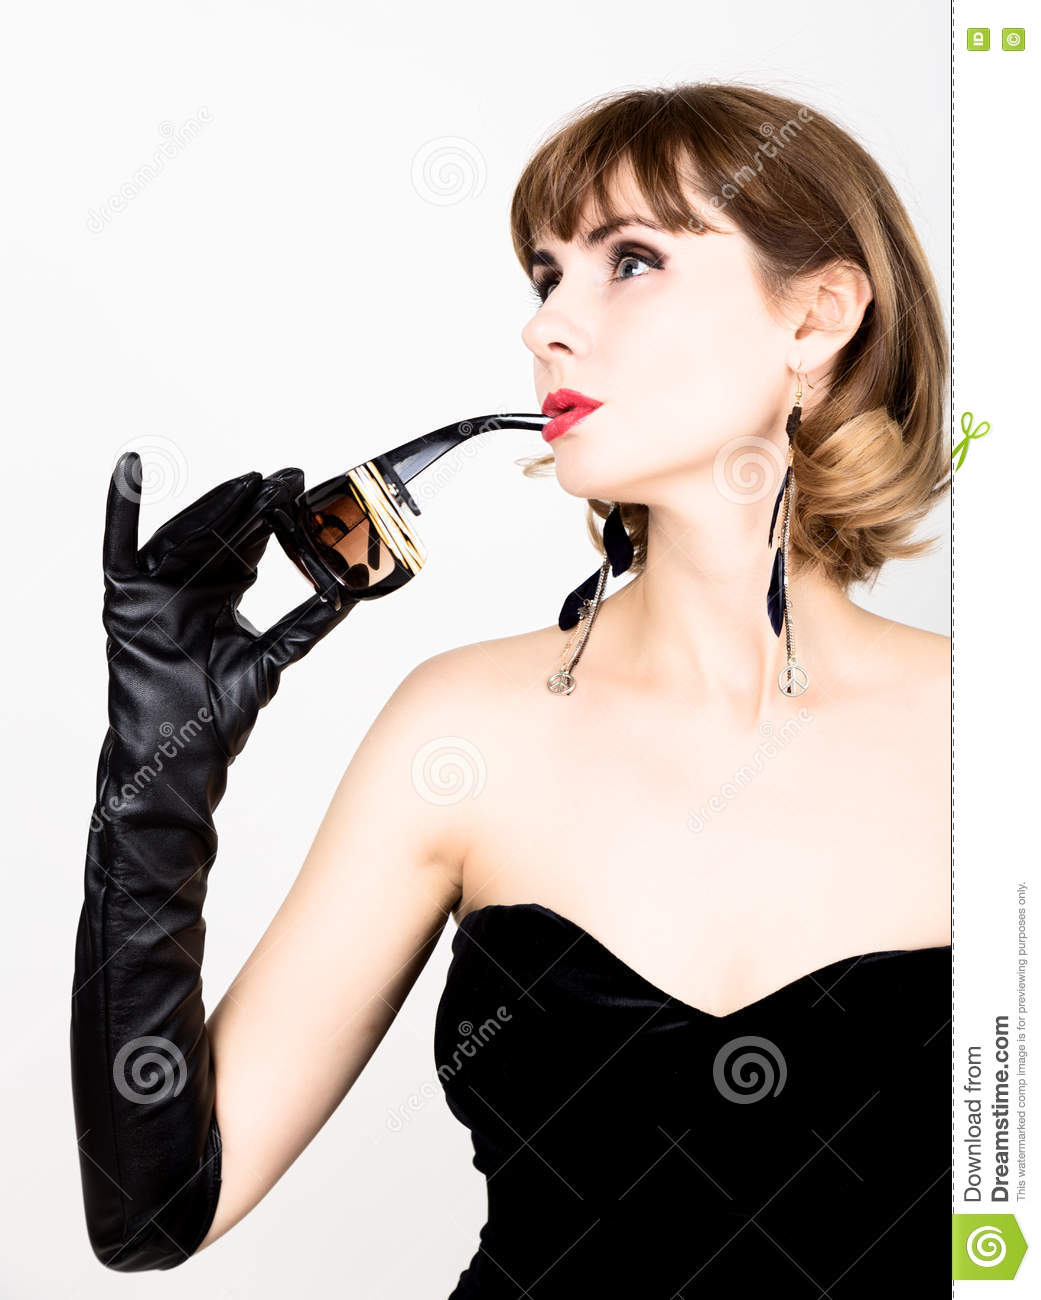 Ladies long vintage leather gloves - Beauty Retro Female Model With Professional Makeup In A Long Leather Gloves Holding Over Size